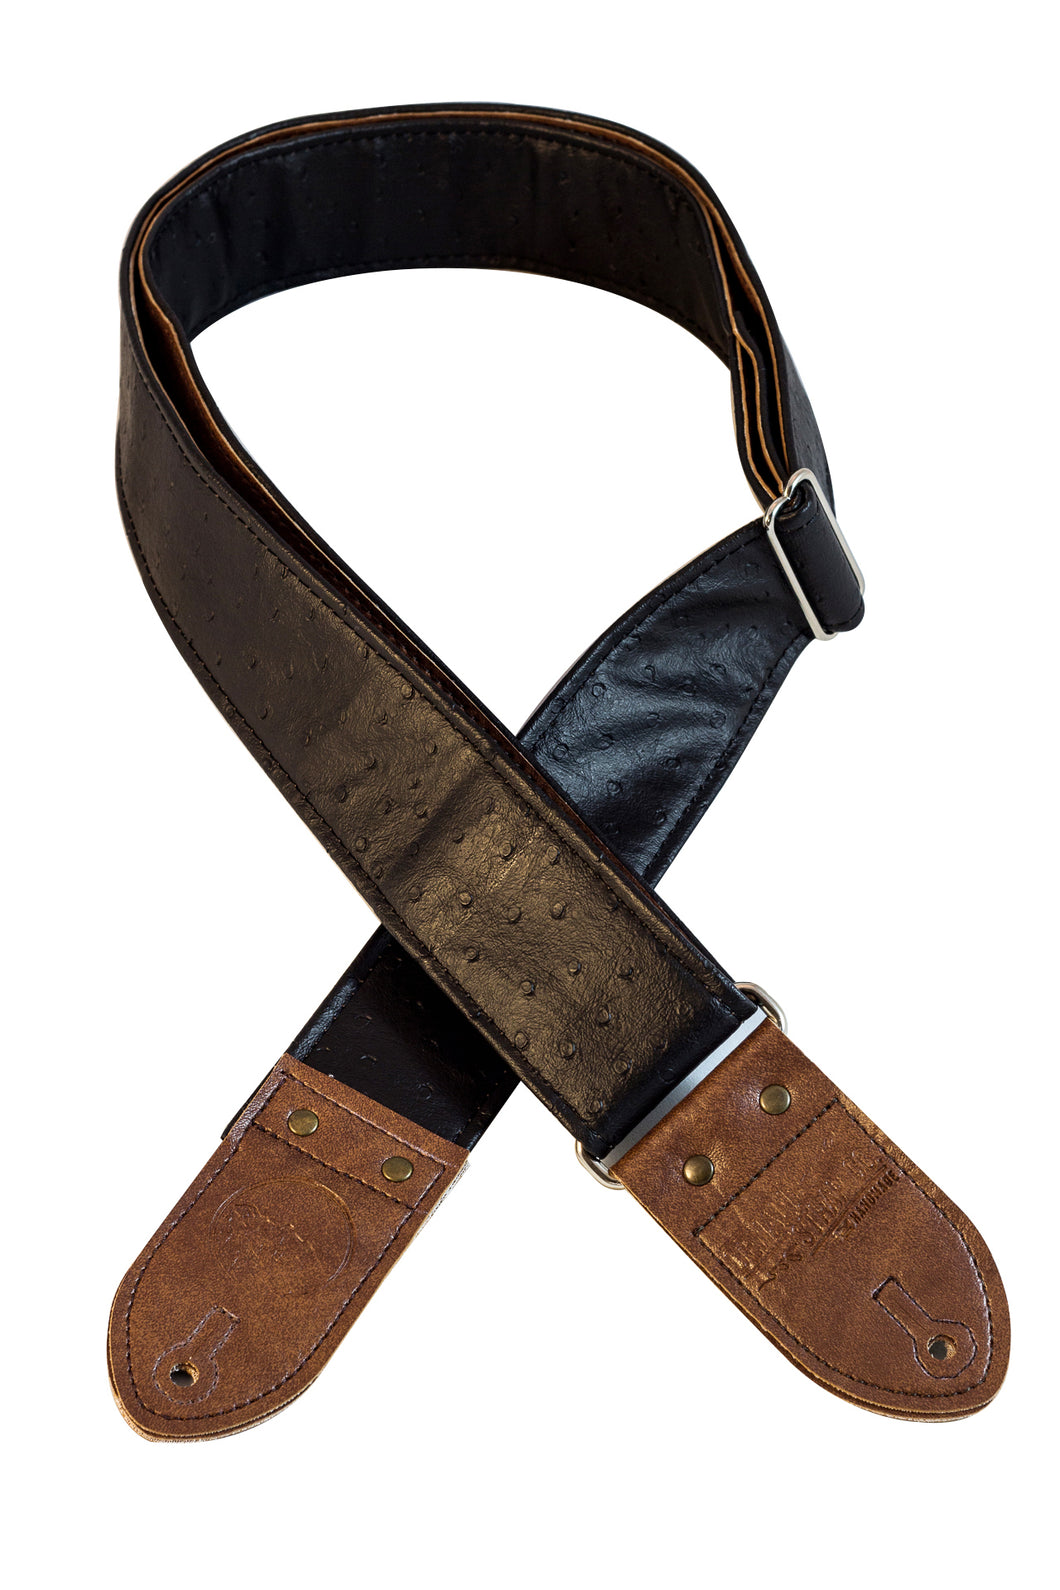 The Blackbird Guitar Strap